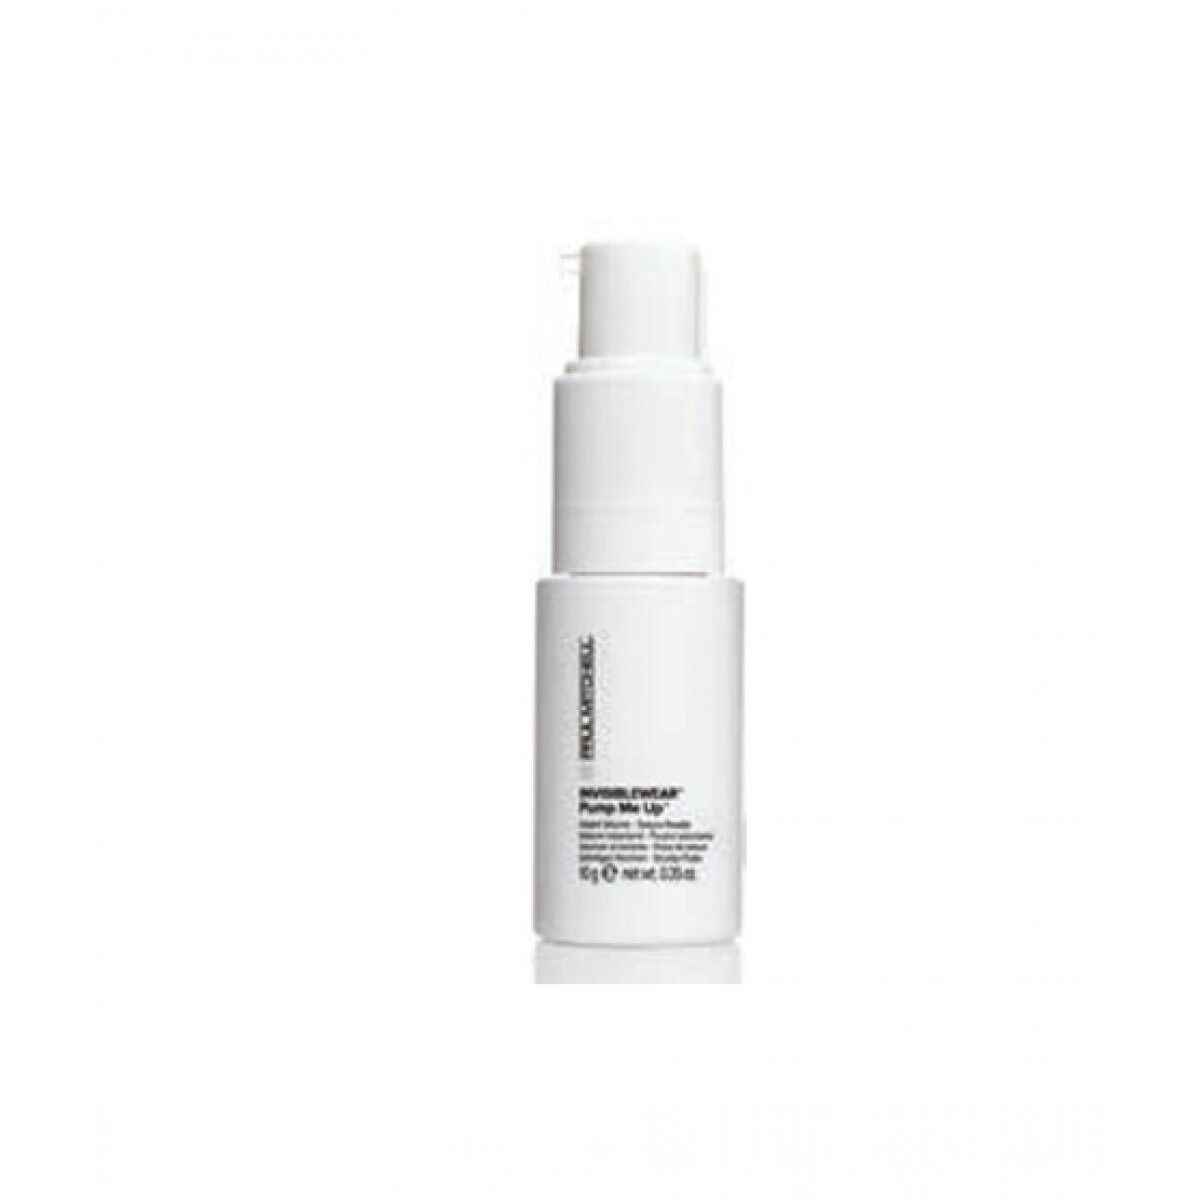 Paul Mitchell Invisiblewear Pump Me Up 10g